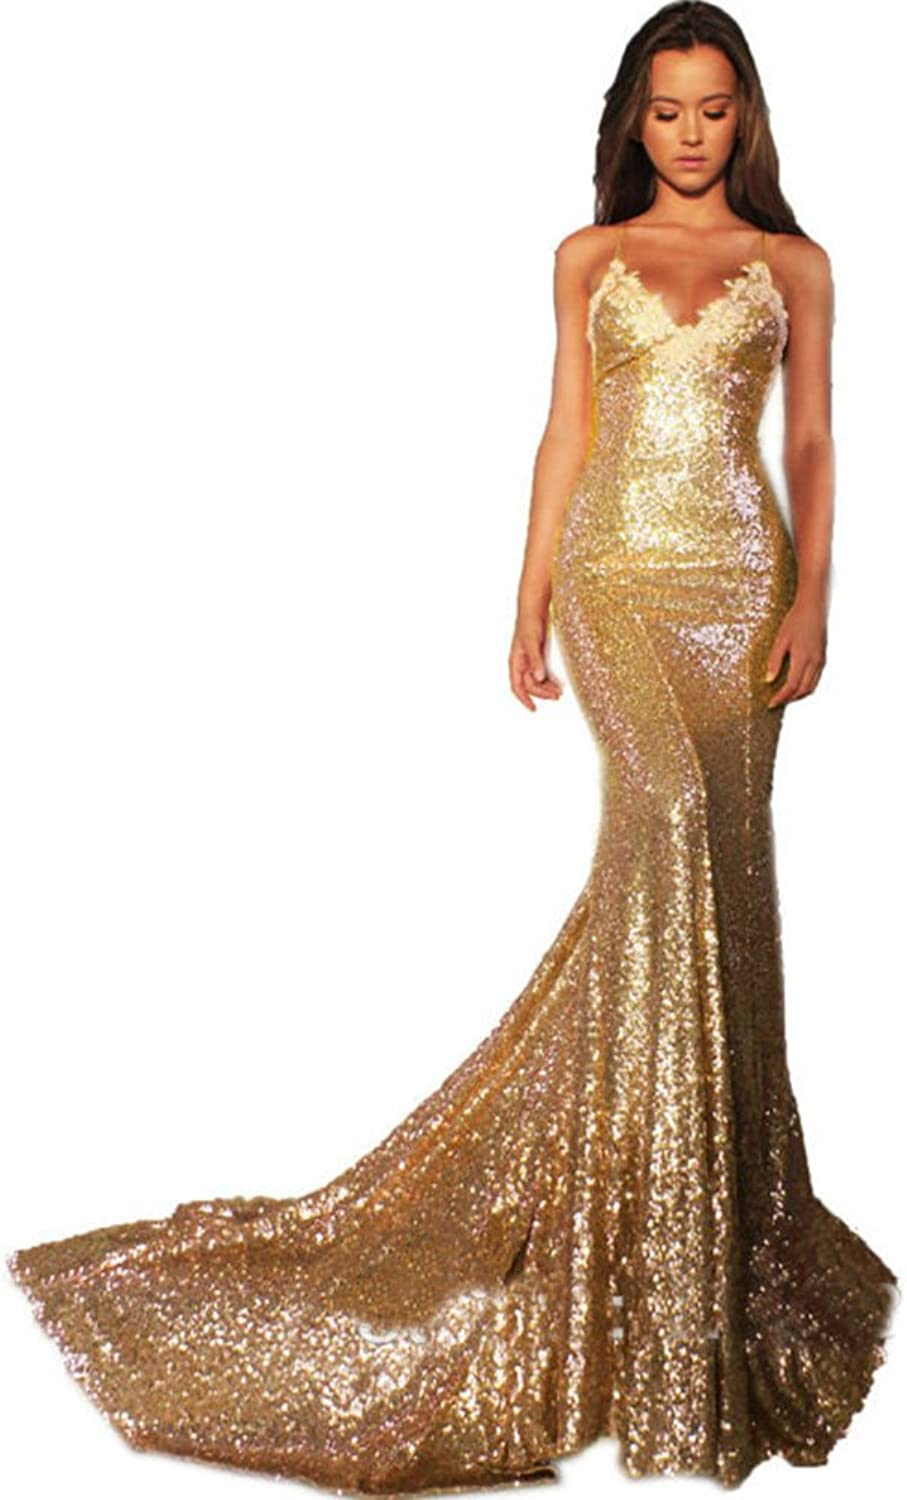 Siaoryne Sexy Spaghetti Straps Sequins Prom Dress Foral Evening Gowns Long